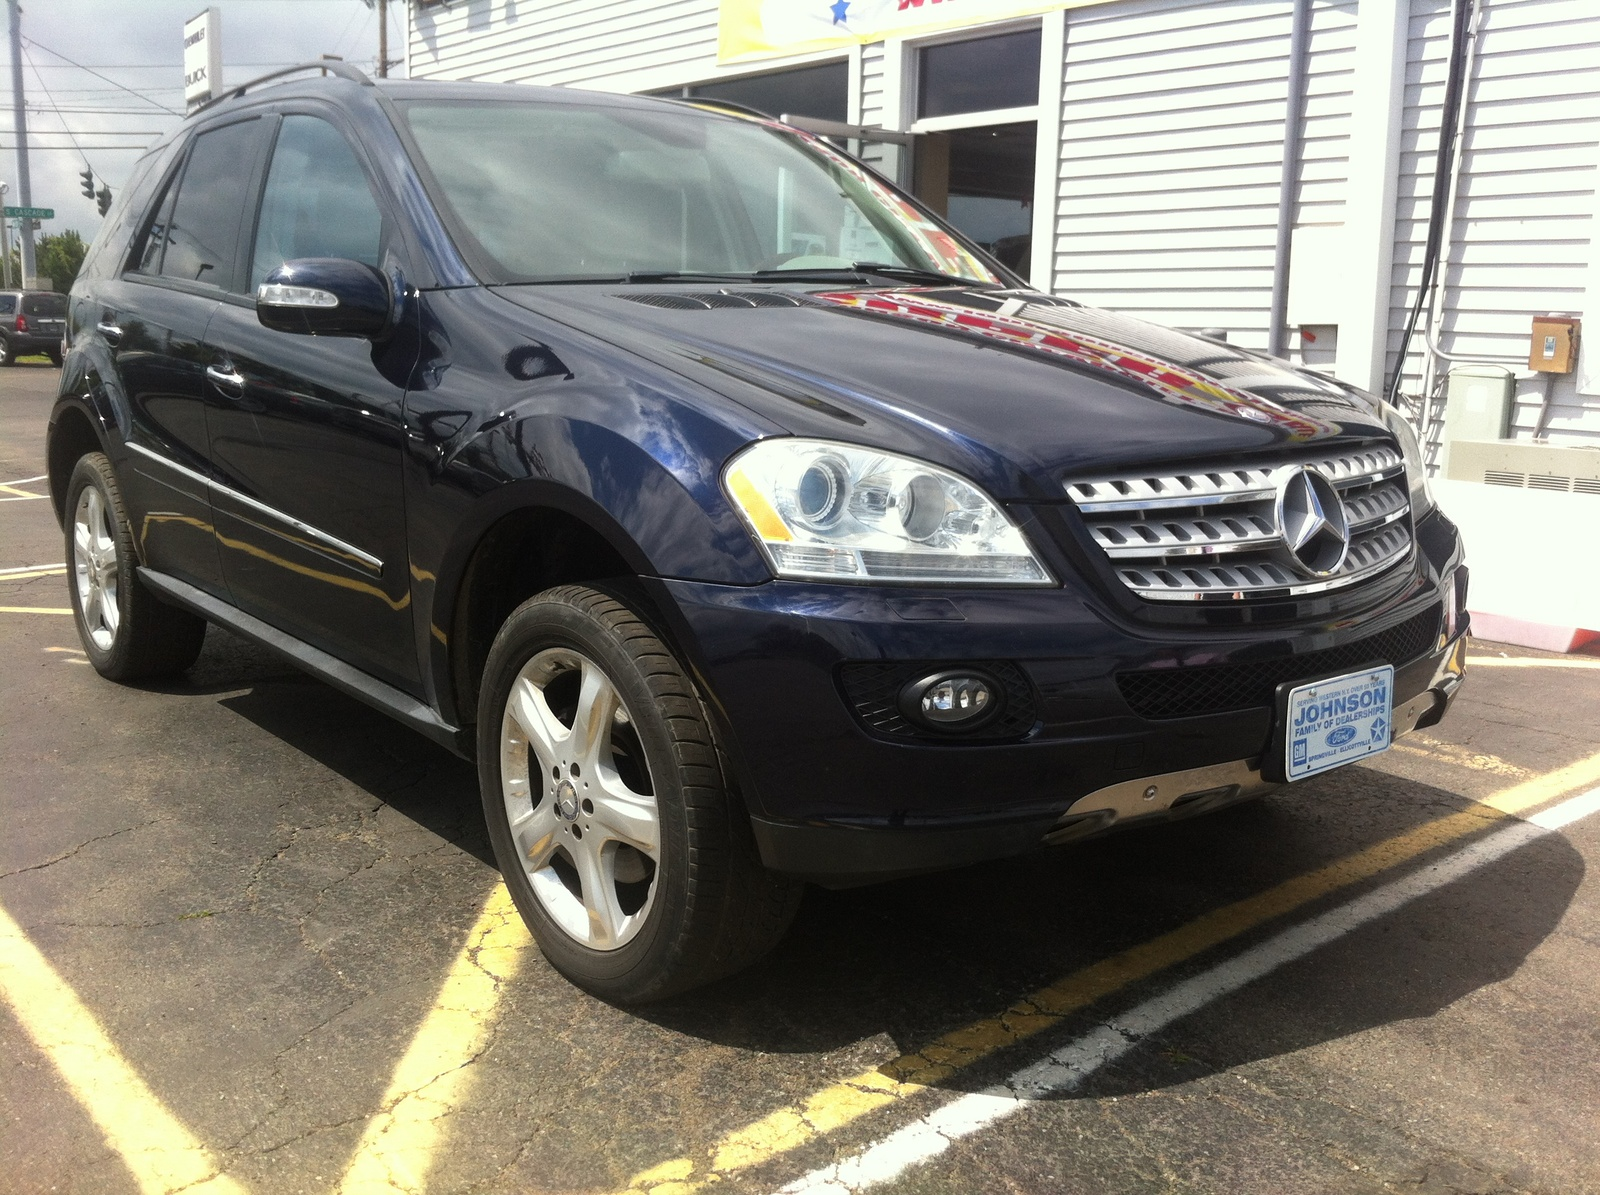 Picture of 2008 mercedes benz m class ml350 exterior for 2008 mercedes benz ml350